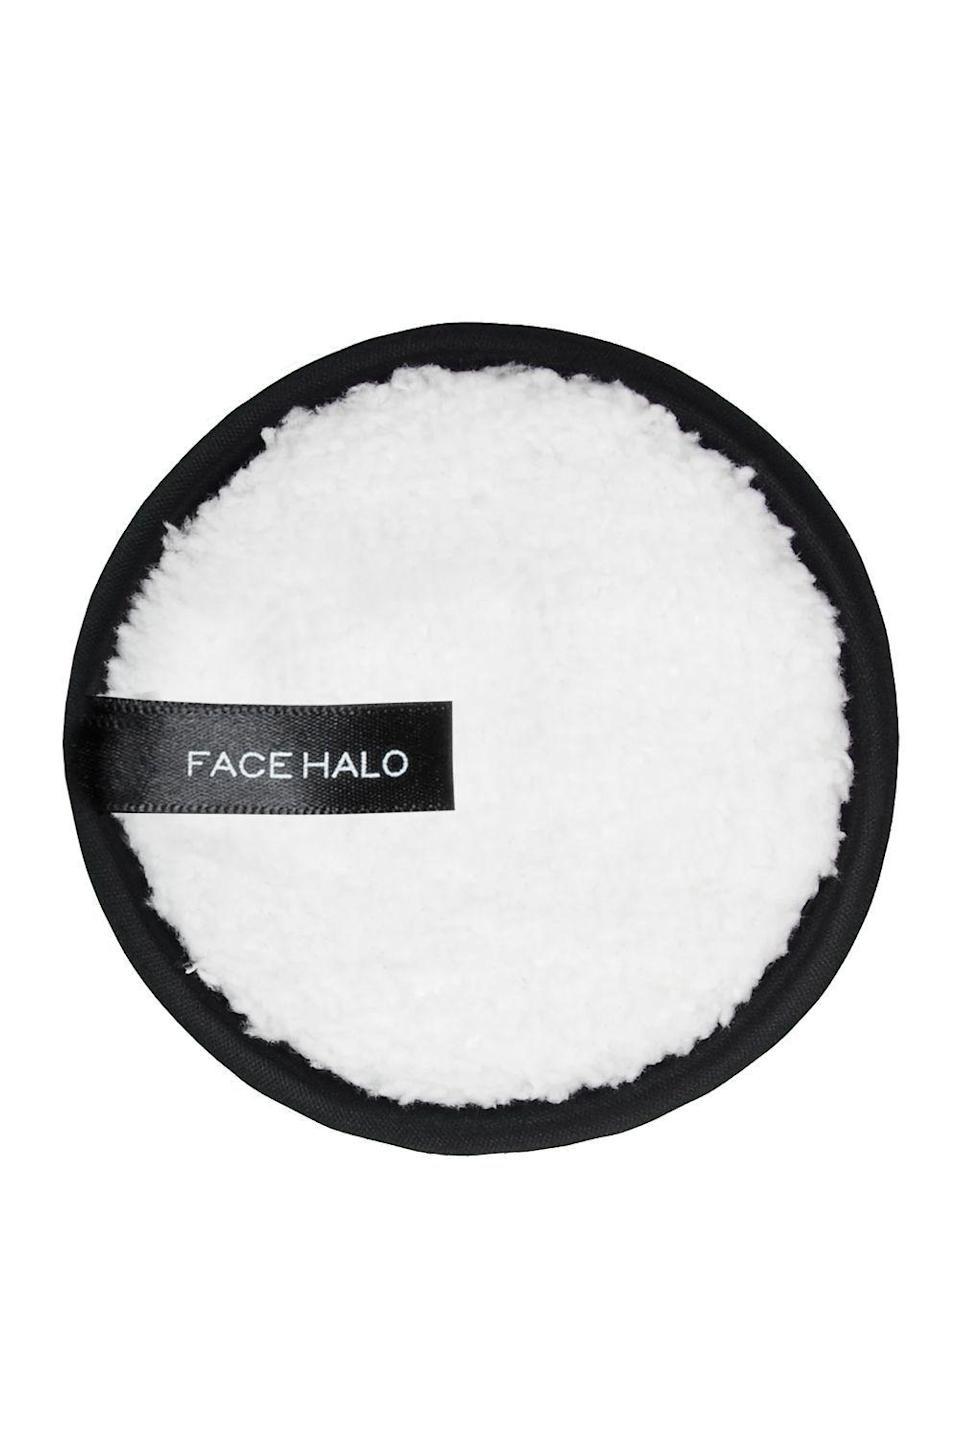 """<p><strong>Face Halo</strong></p><p>amazon.com</p><p><strong>$22.00</strong></p><p><a href=""""https://www.amazon.com/dp/B07F1CC3CR?tag=syn-yahoo-20&ascsubtag=%5Bartid%7C10049.g.34329071%5Bsrc%7Cyahoo-us"""" rel=""""nofollow noopener"""" target=""""_blank"""" data-ylk=""""slk:Shop Now"""" class=""""link rapid-noclick-resp"""">Shop Now</a></p><p>A former coworker introduced me to these reusable rounds a few years ago and I've been hooked ever since. Just wet the FaceHalo (it uses ultra-fine fiber strands to gently remove makeup) and <strong>wipe it across your <a href=""""https://www.cosmopolitan.com/style-beauty/beauty/g2590/best-eye-creams/"""" rel=""""nofollow noopener"""" target=""""_blank"""" data-ylk=""""slk:eyes"""" class=""""link rapid-noclick-resp"""">eyes</a> and face to reveal clean, glowing skin</strong>, then toss it in the wash. It can be cleaned up 200 times.</p>"""